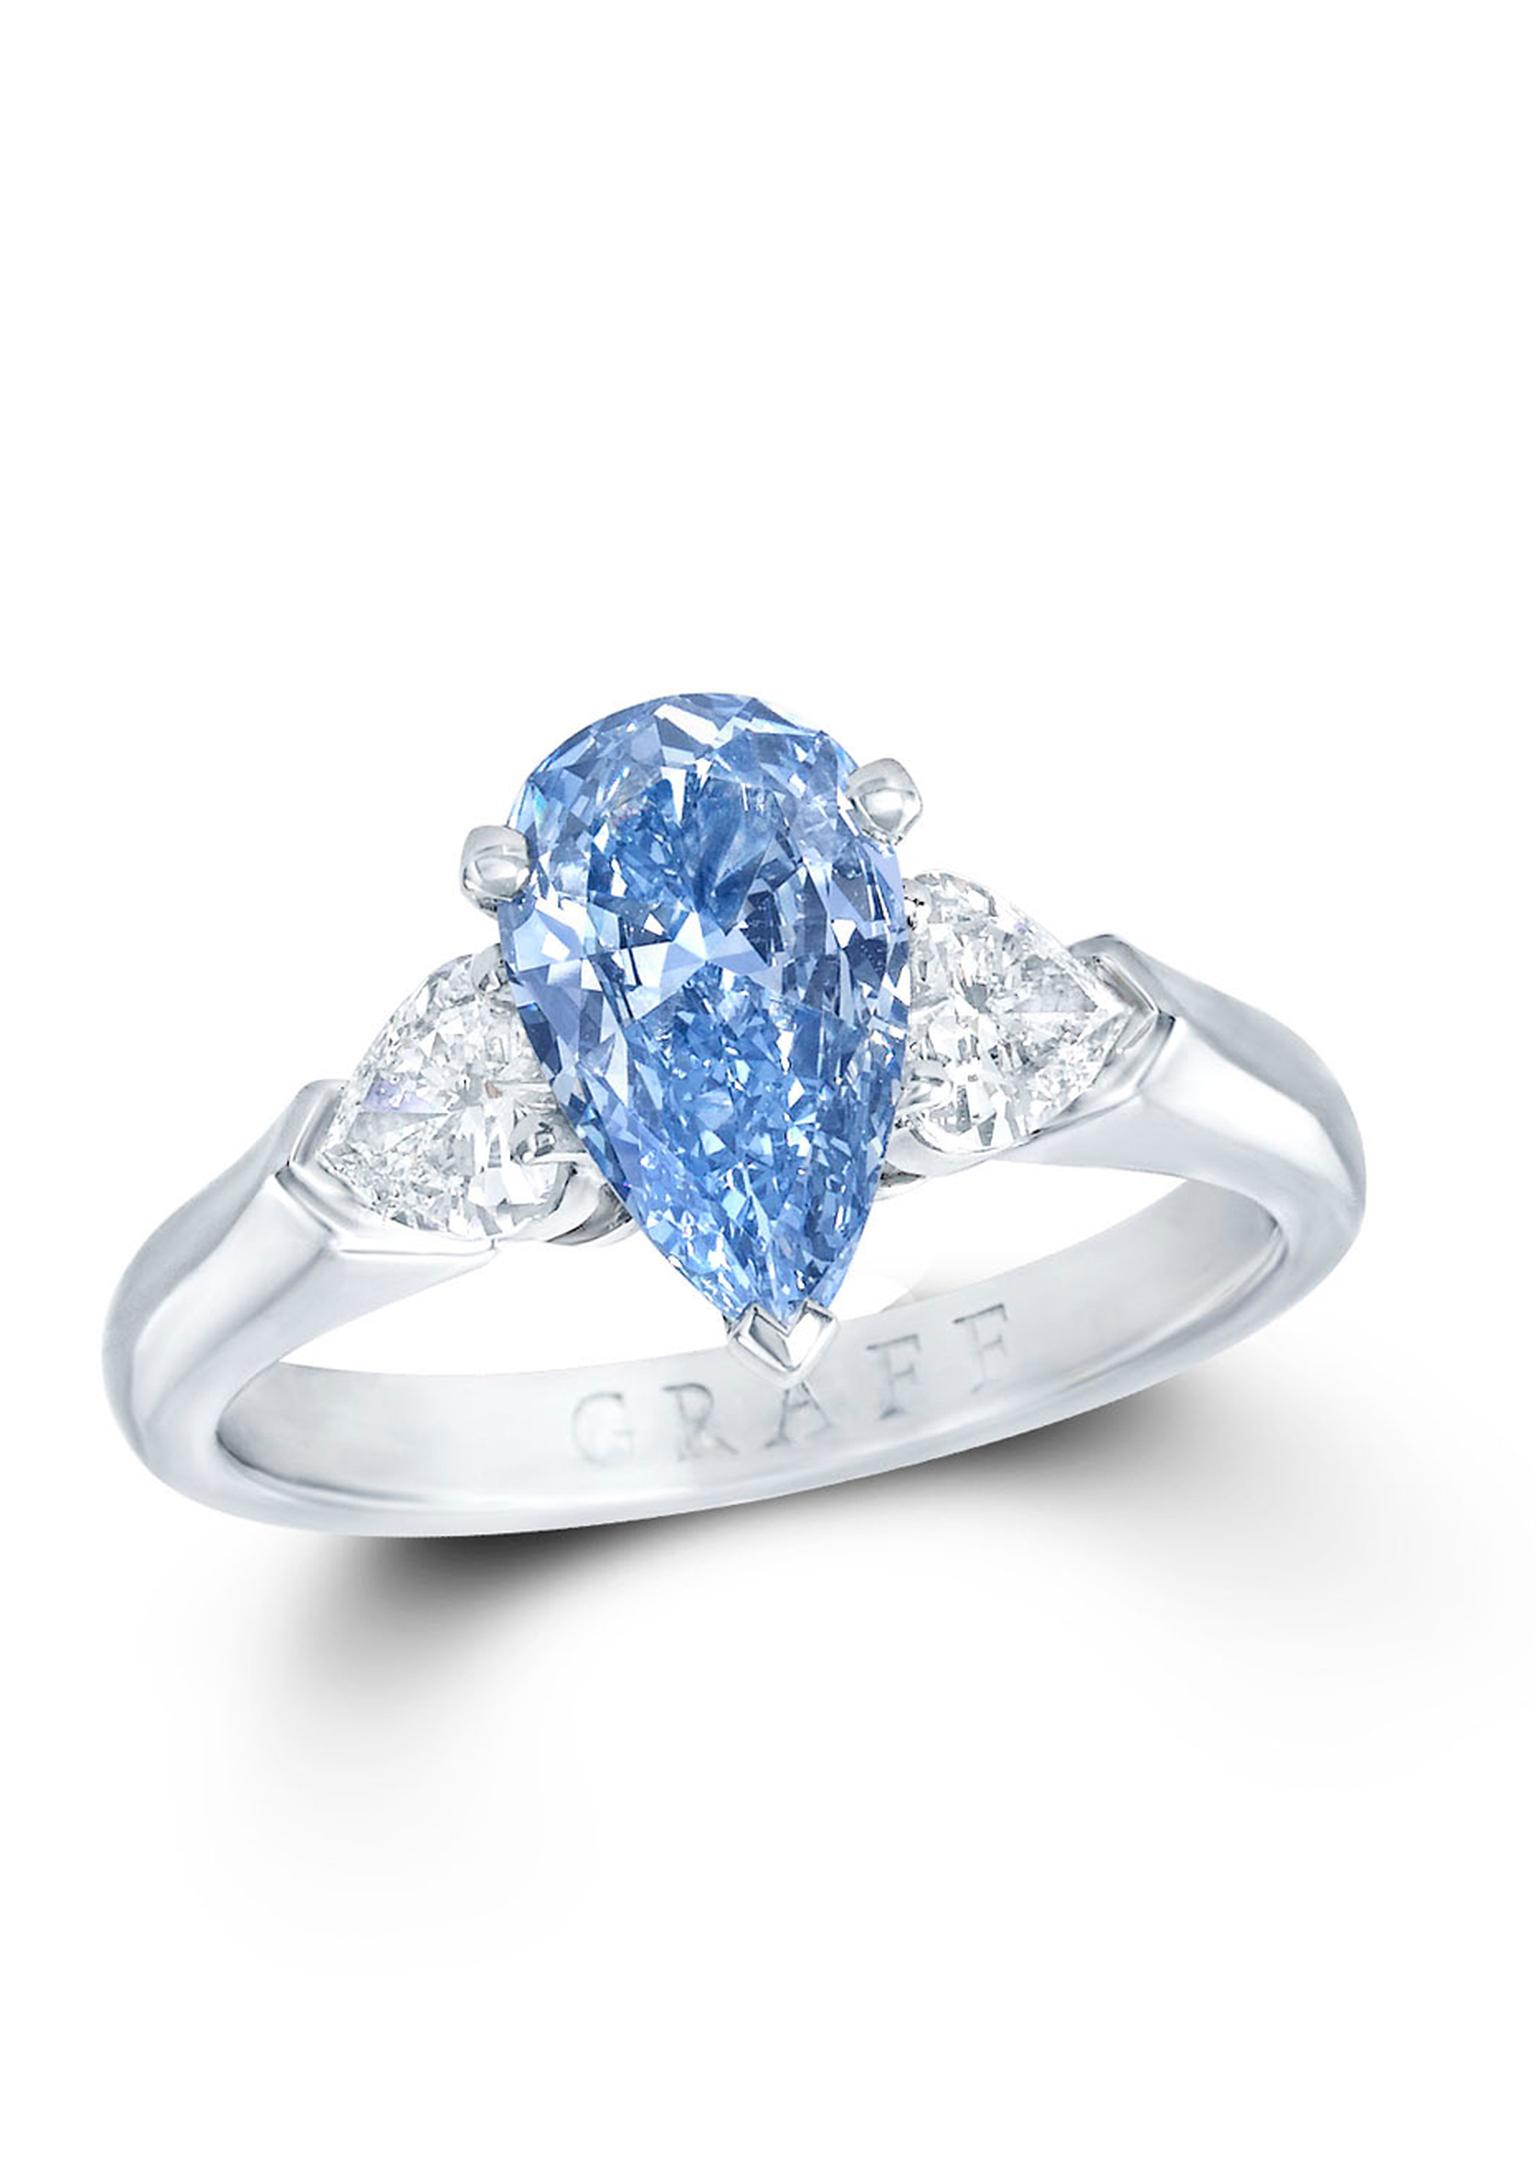 Graff 1.04ct Blue Internally Flawless diamond ring flanked by two pear-shaped white diamonds.